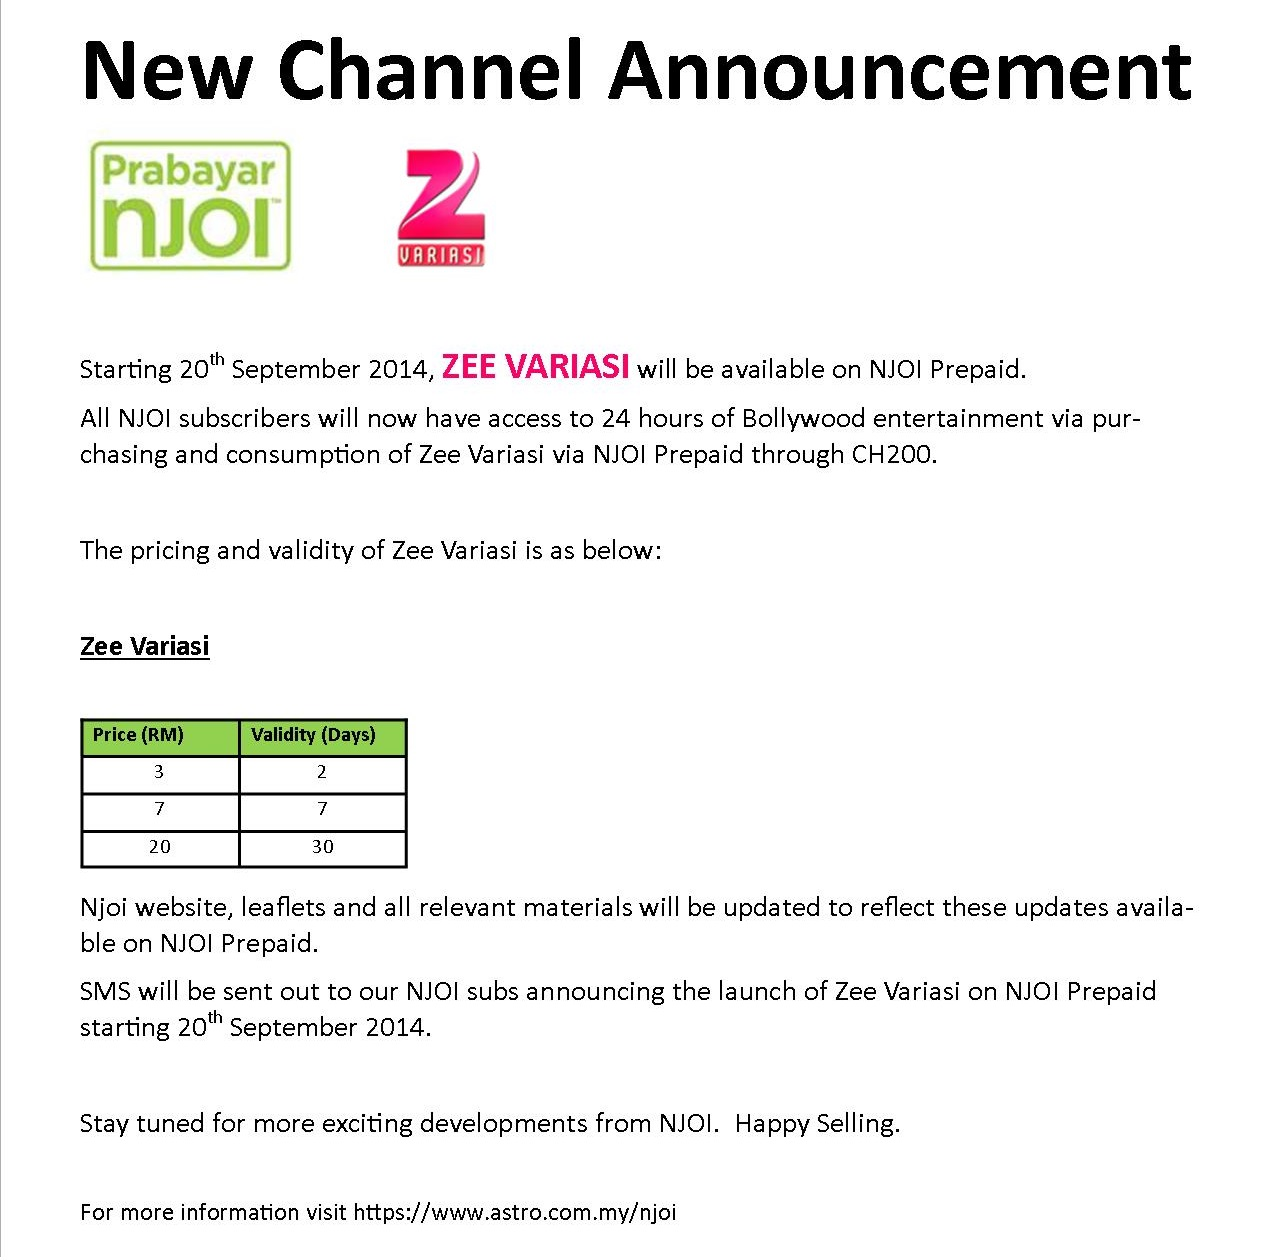 announcement_I2 NJOI